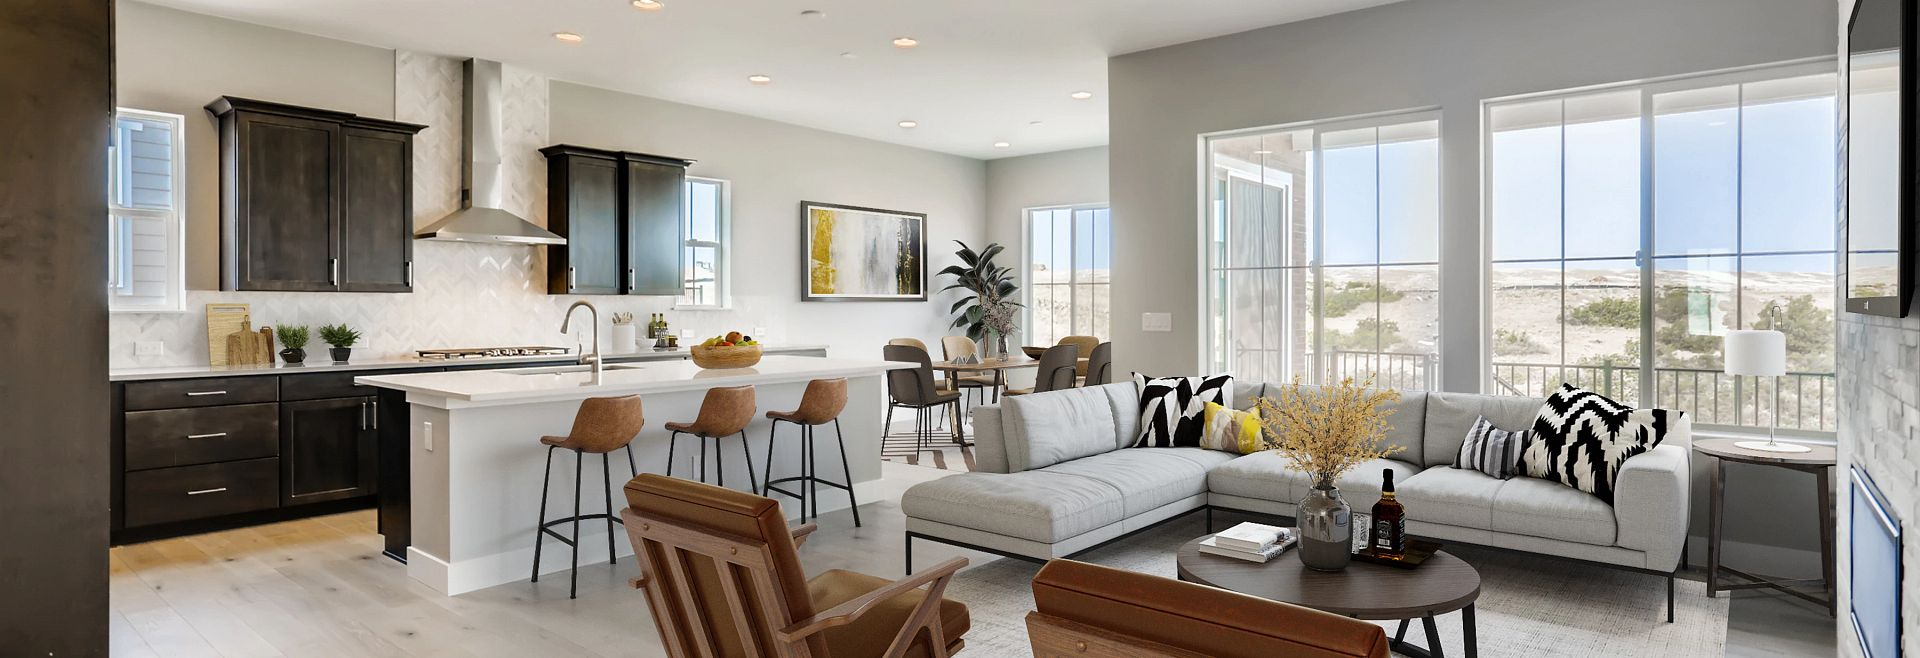 Canyons Reserve Heritage QMI Lot 816 Great Room, Kitchen, Dining